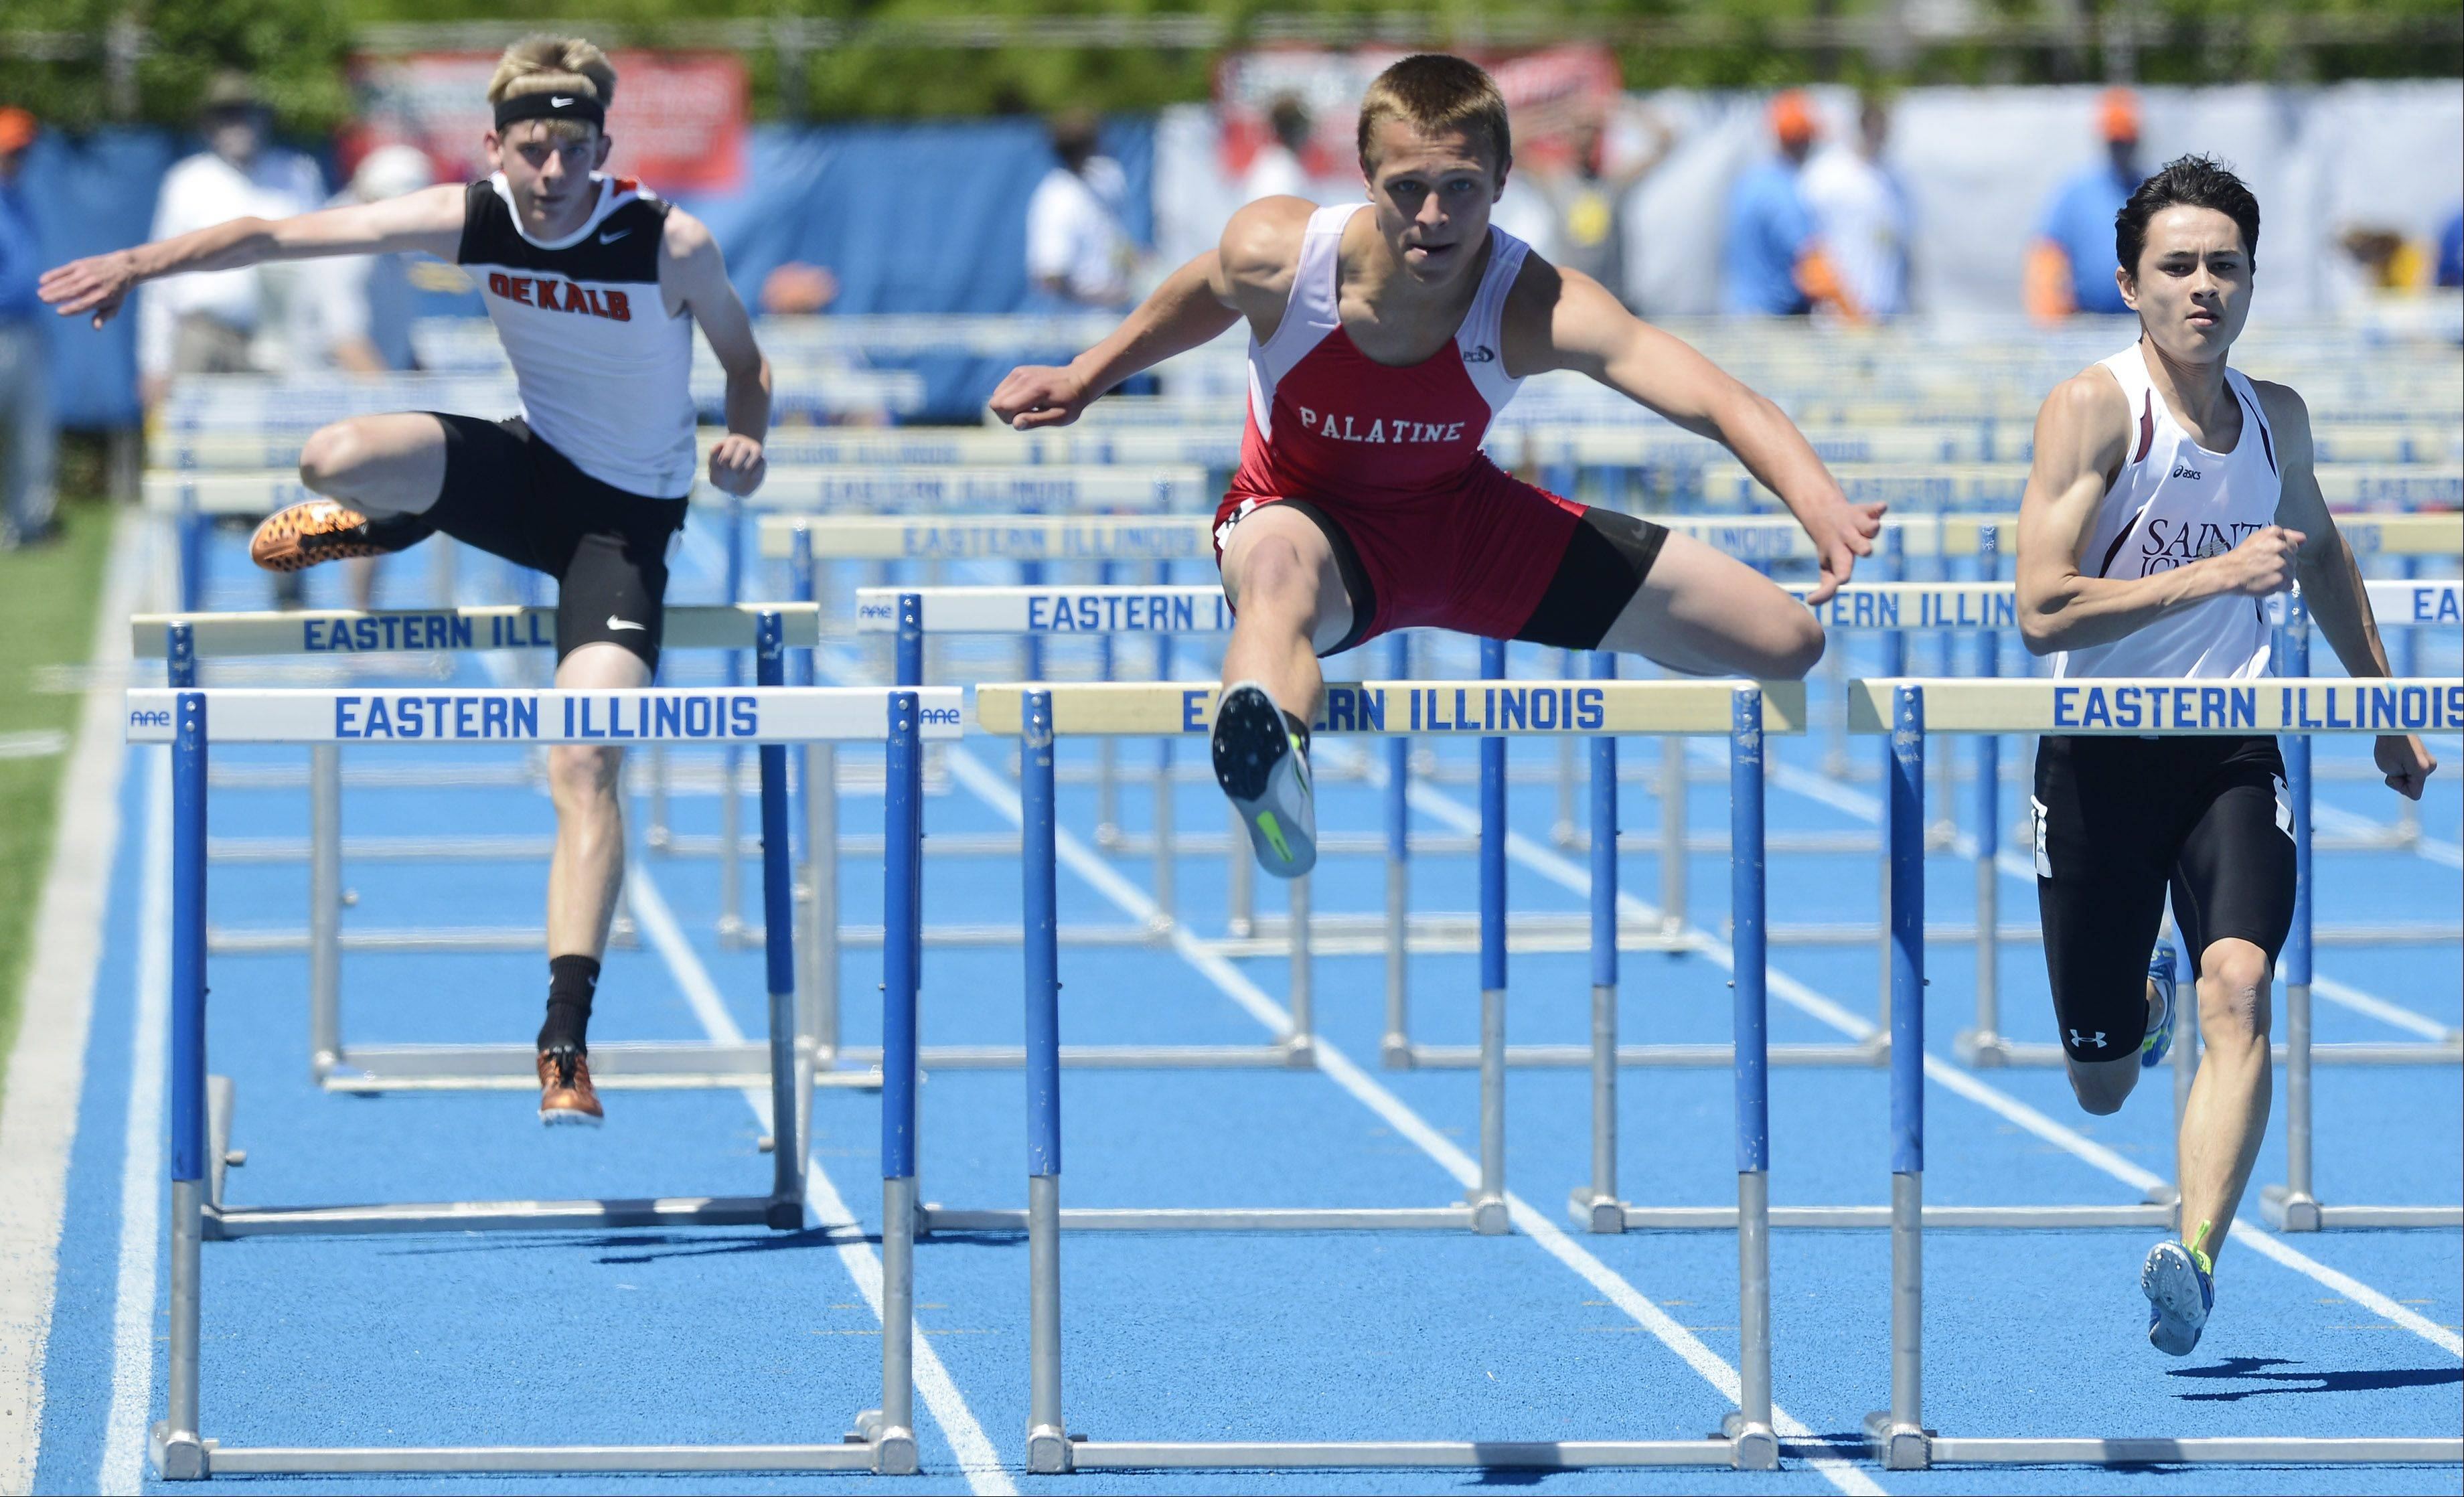 Palatine's Cam Kuksa, middle, clears the final hurdle in the 11-meter high hurdles during the boys state track preliminaries in Charleston Friday.